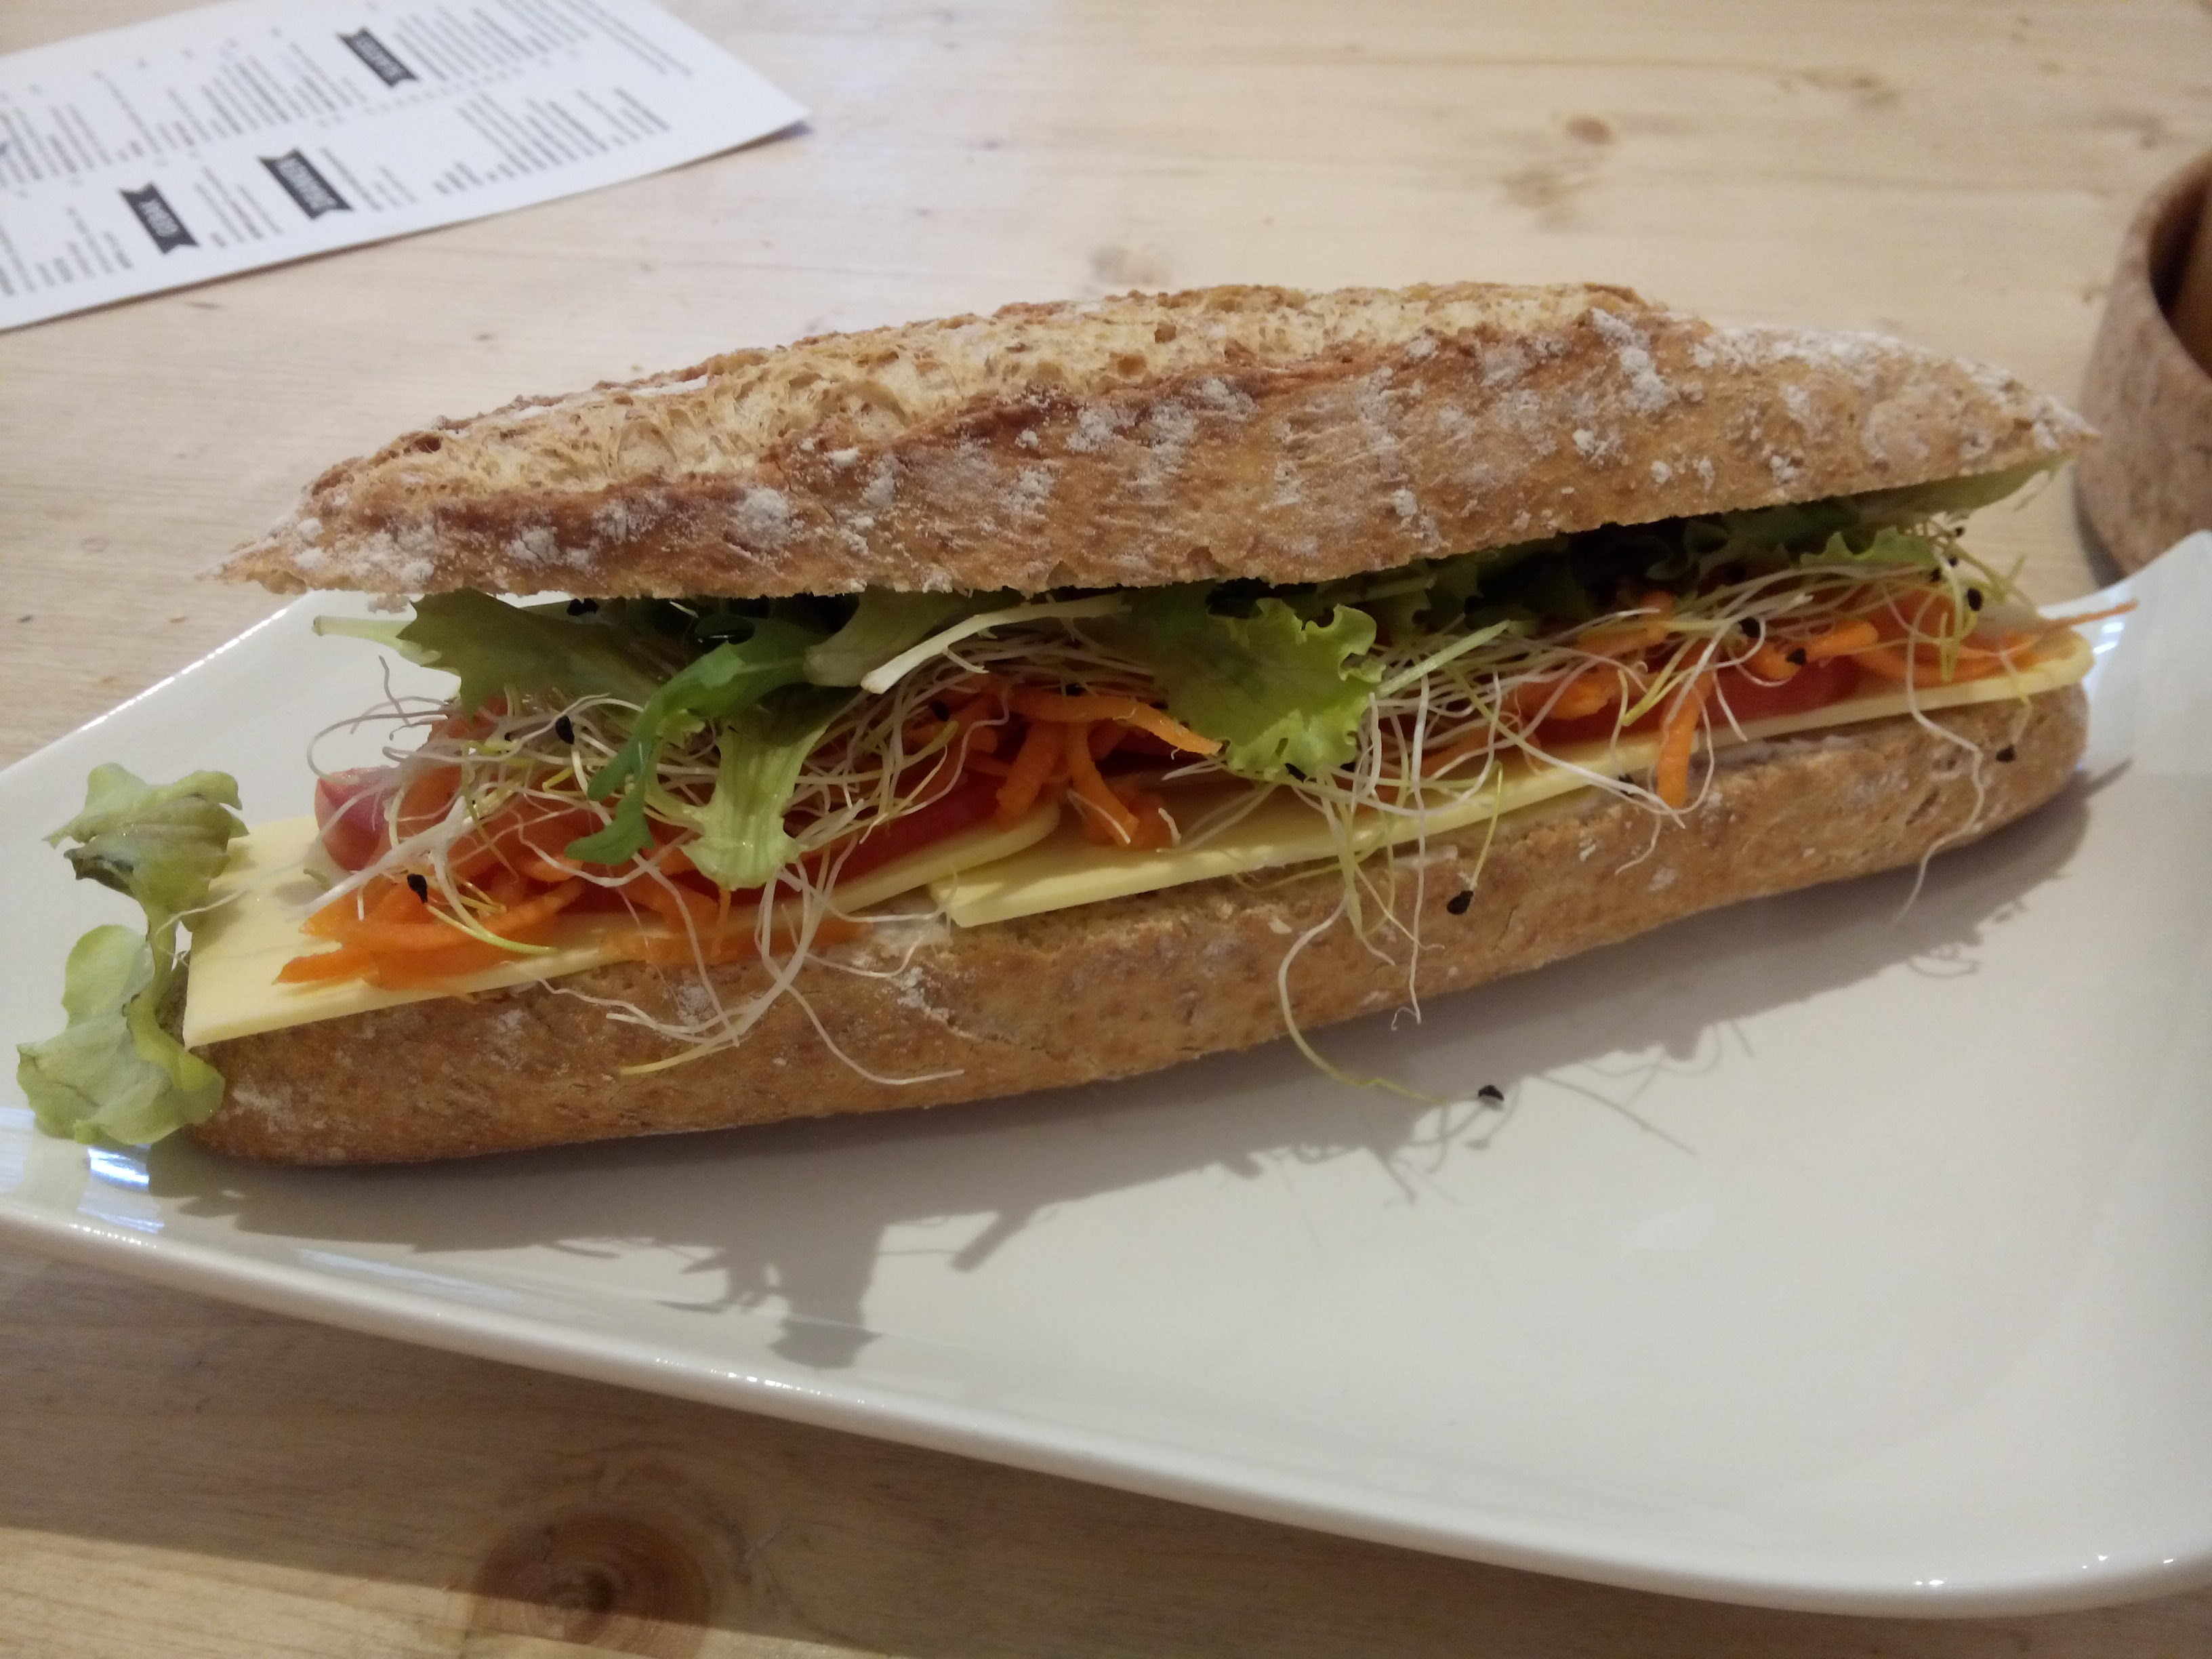 A crusty baguette filled with salad and (vegan) cheese on a plate